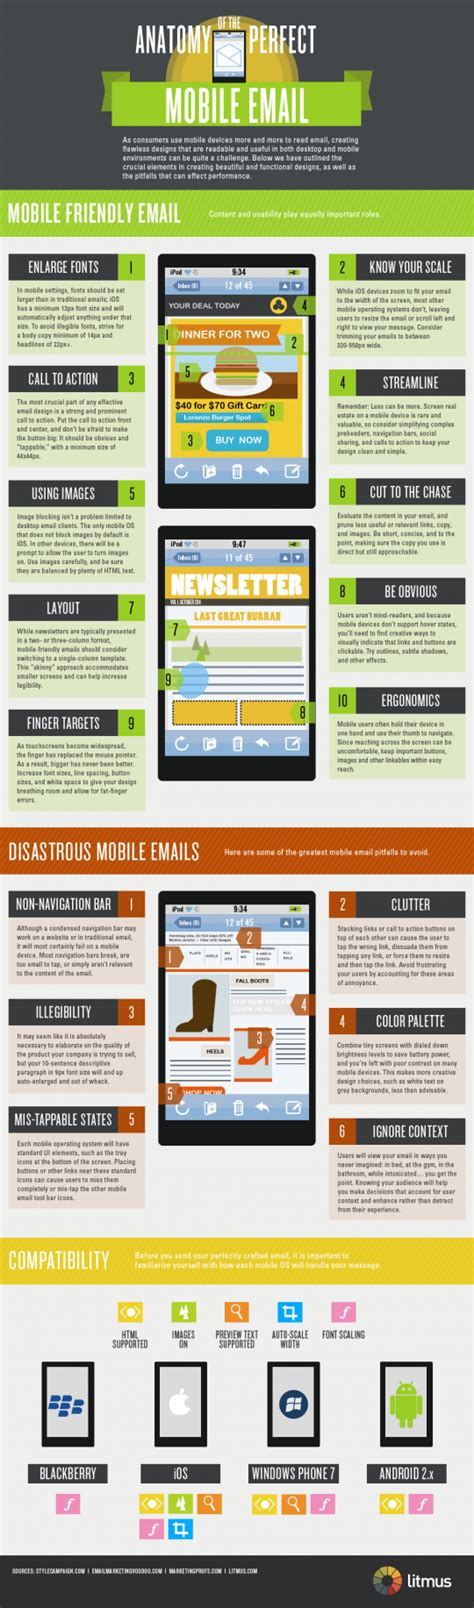 email layout mobile infographic anatomy of the perfect mobile email email